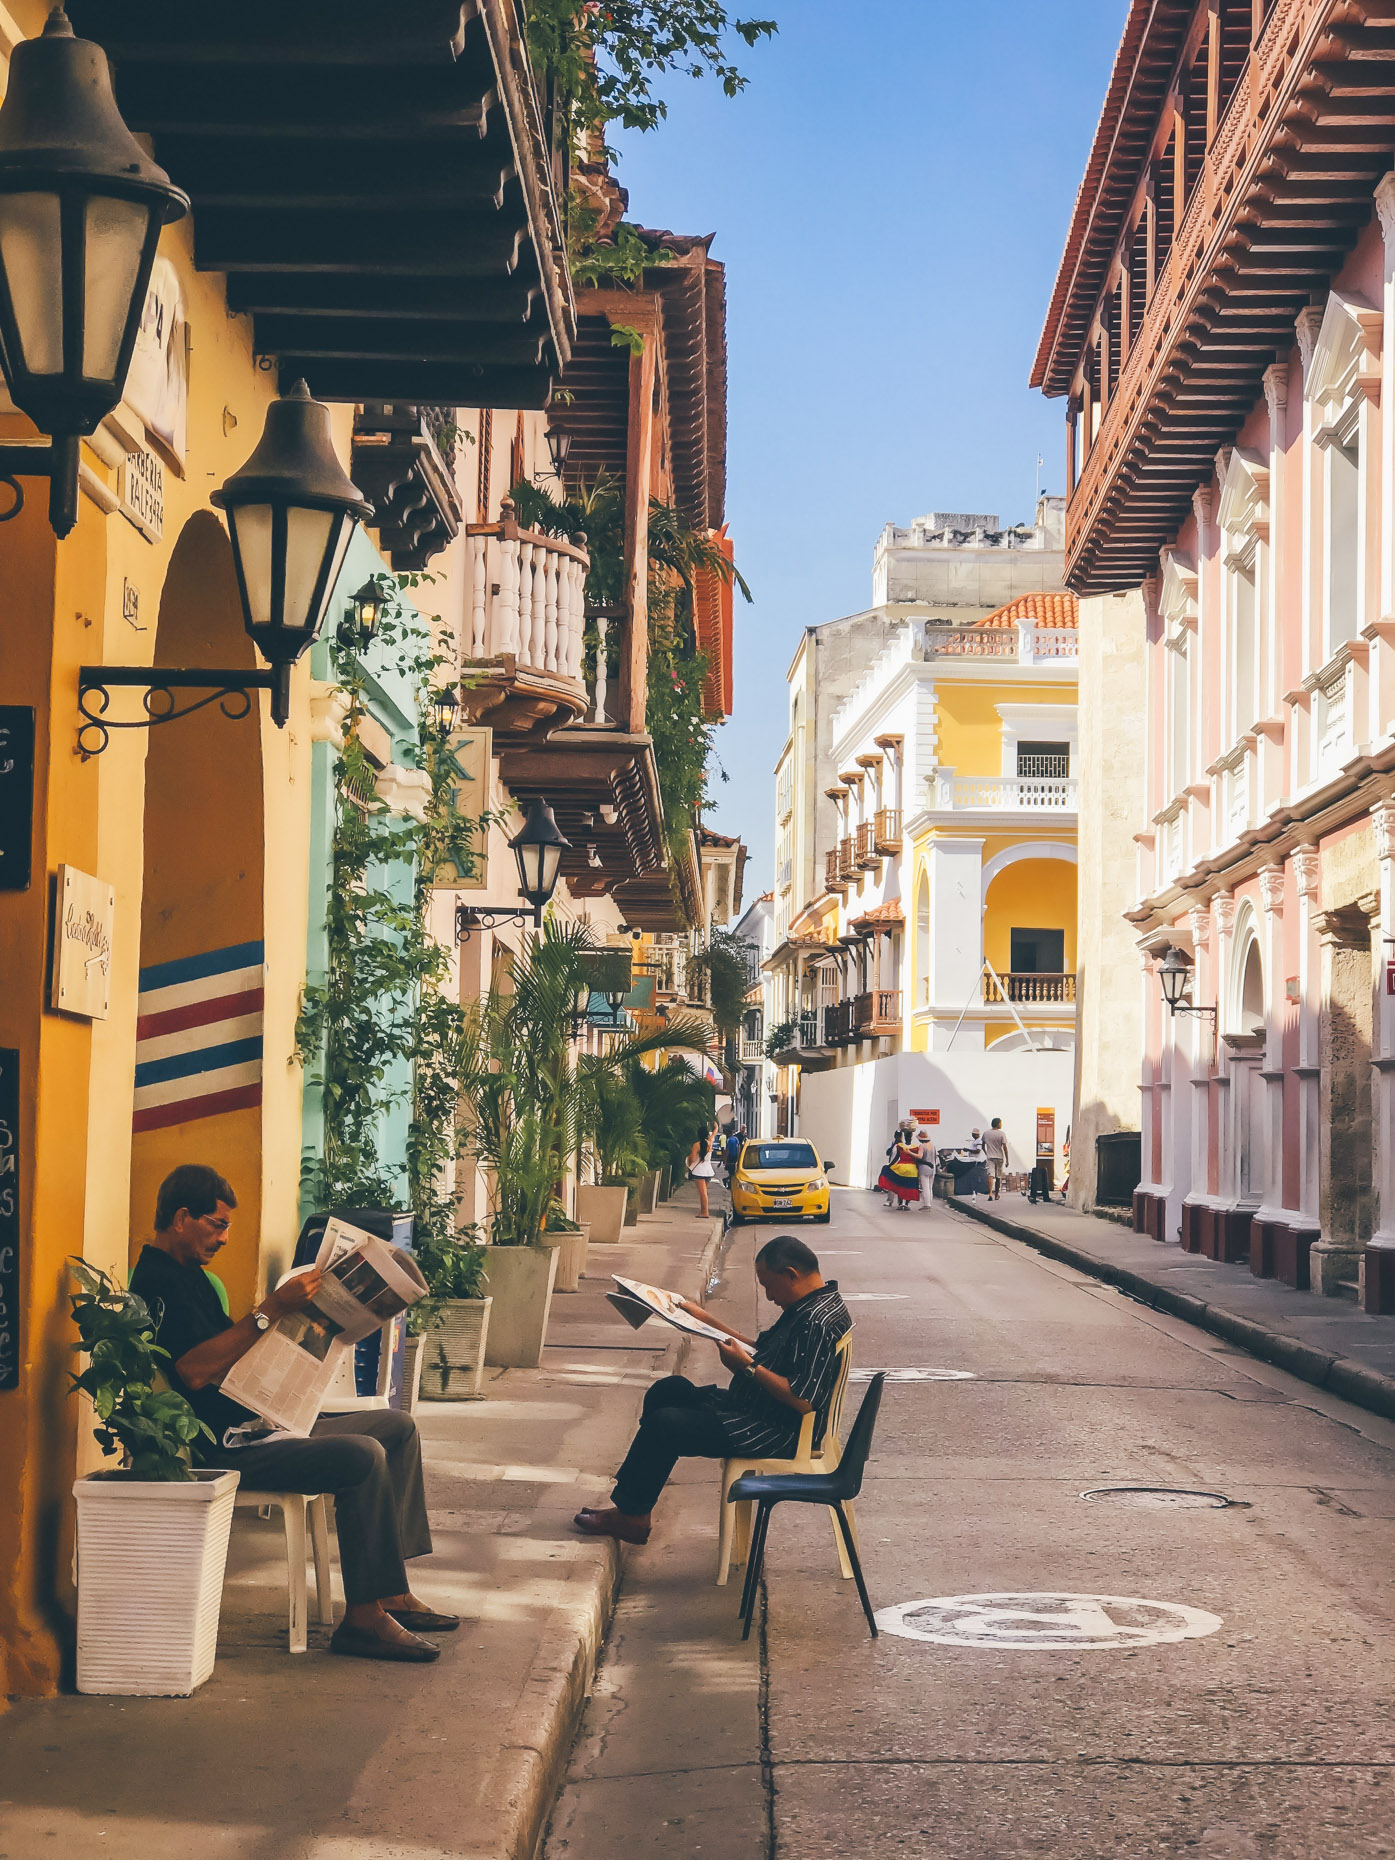 Old men sitting on sidewalk in Cartagena Colombia reading newspapers